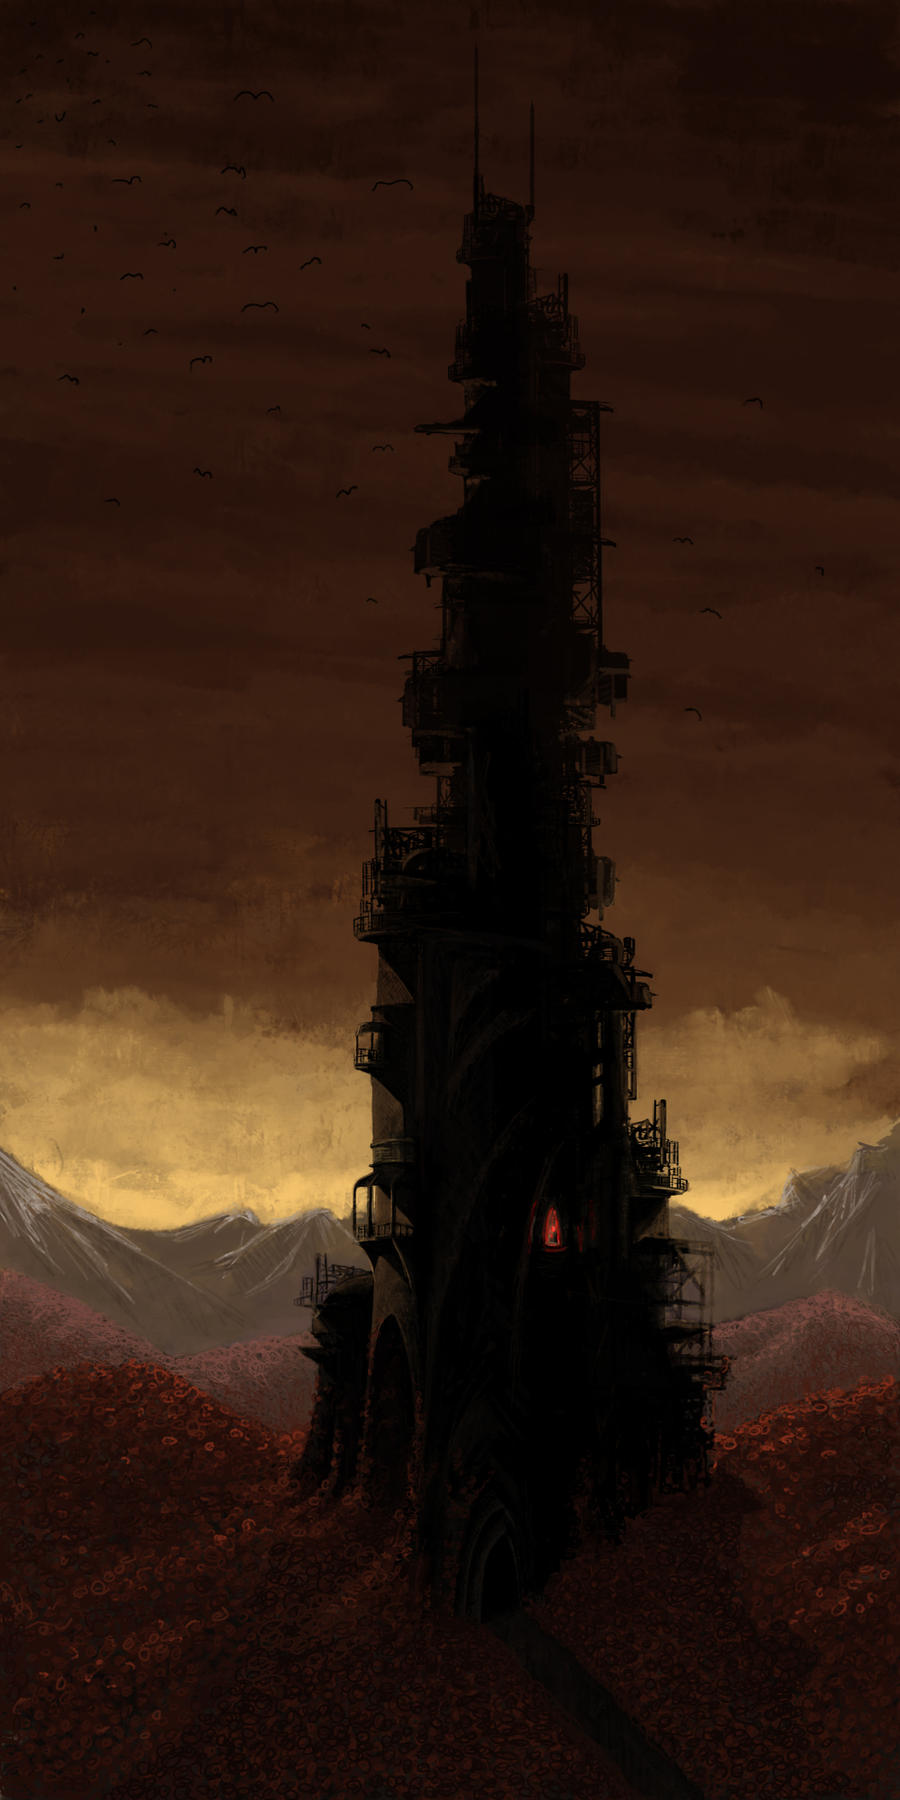 The Dark Tower by Namuab